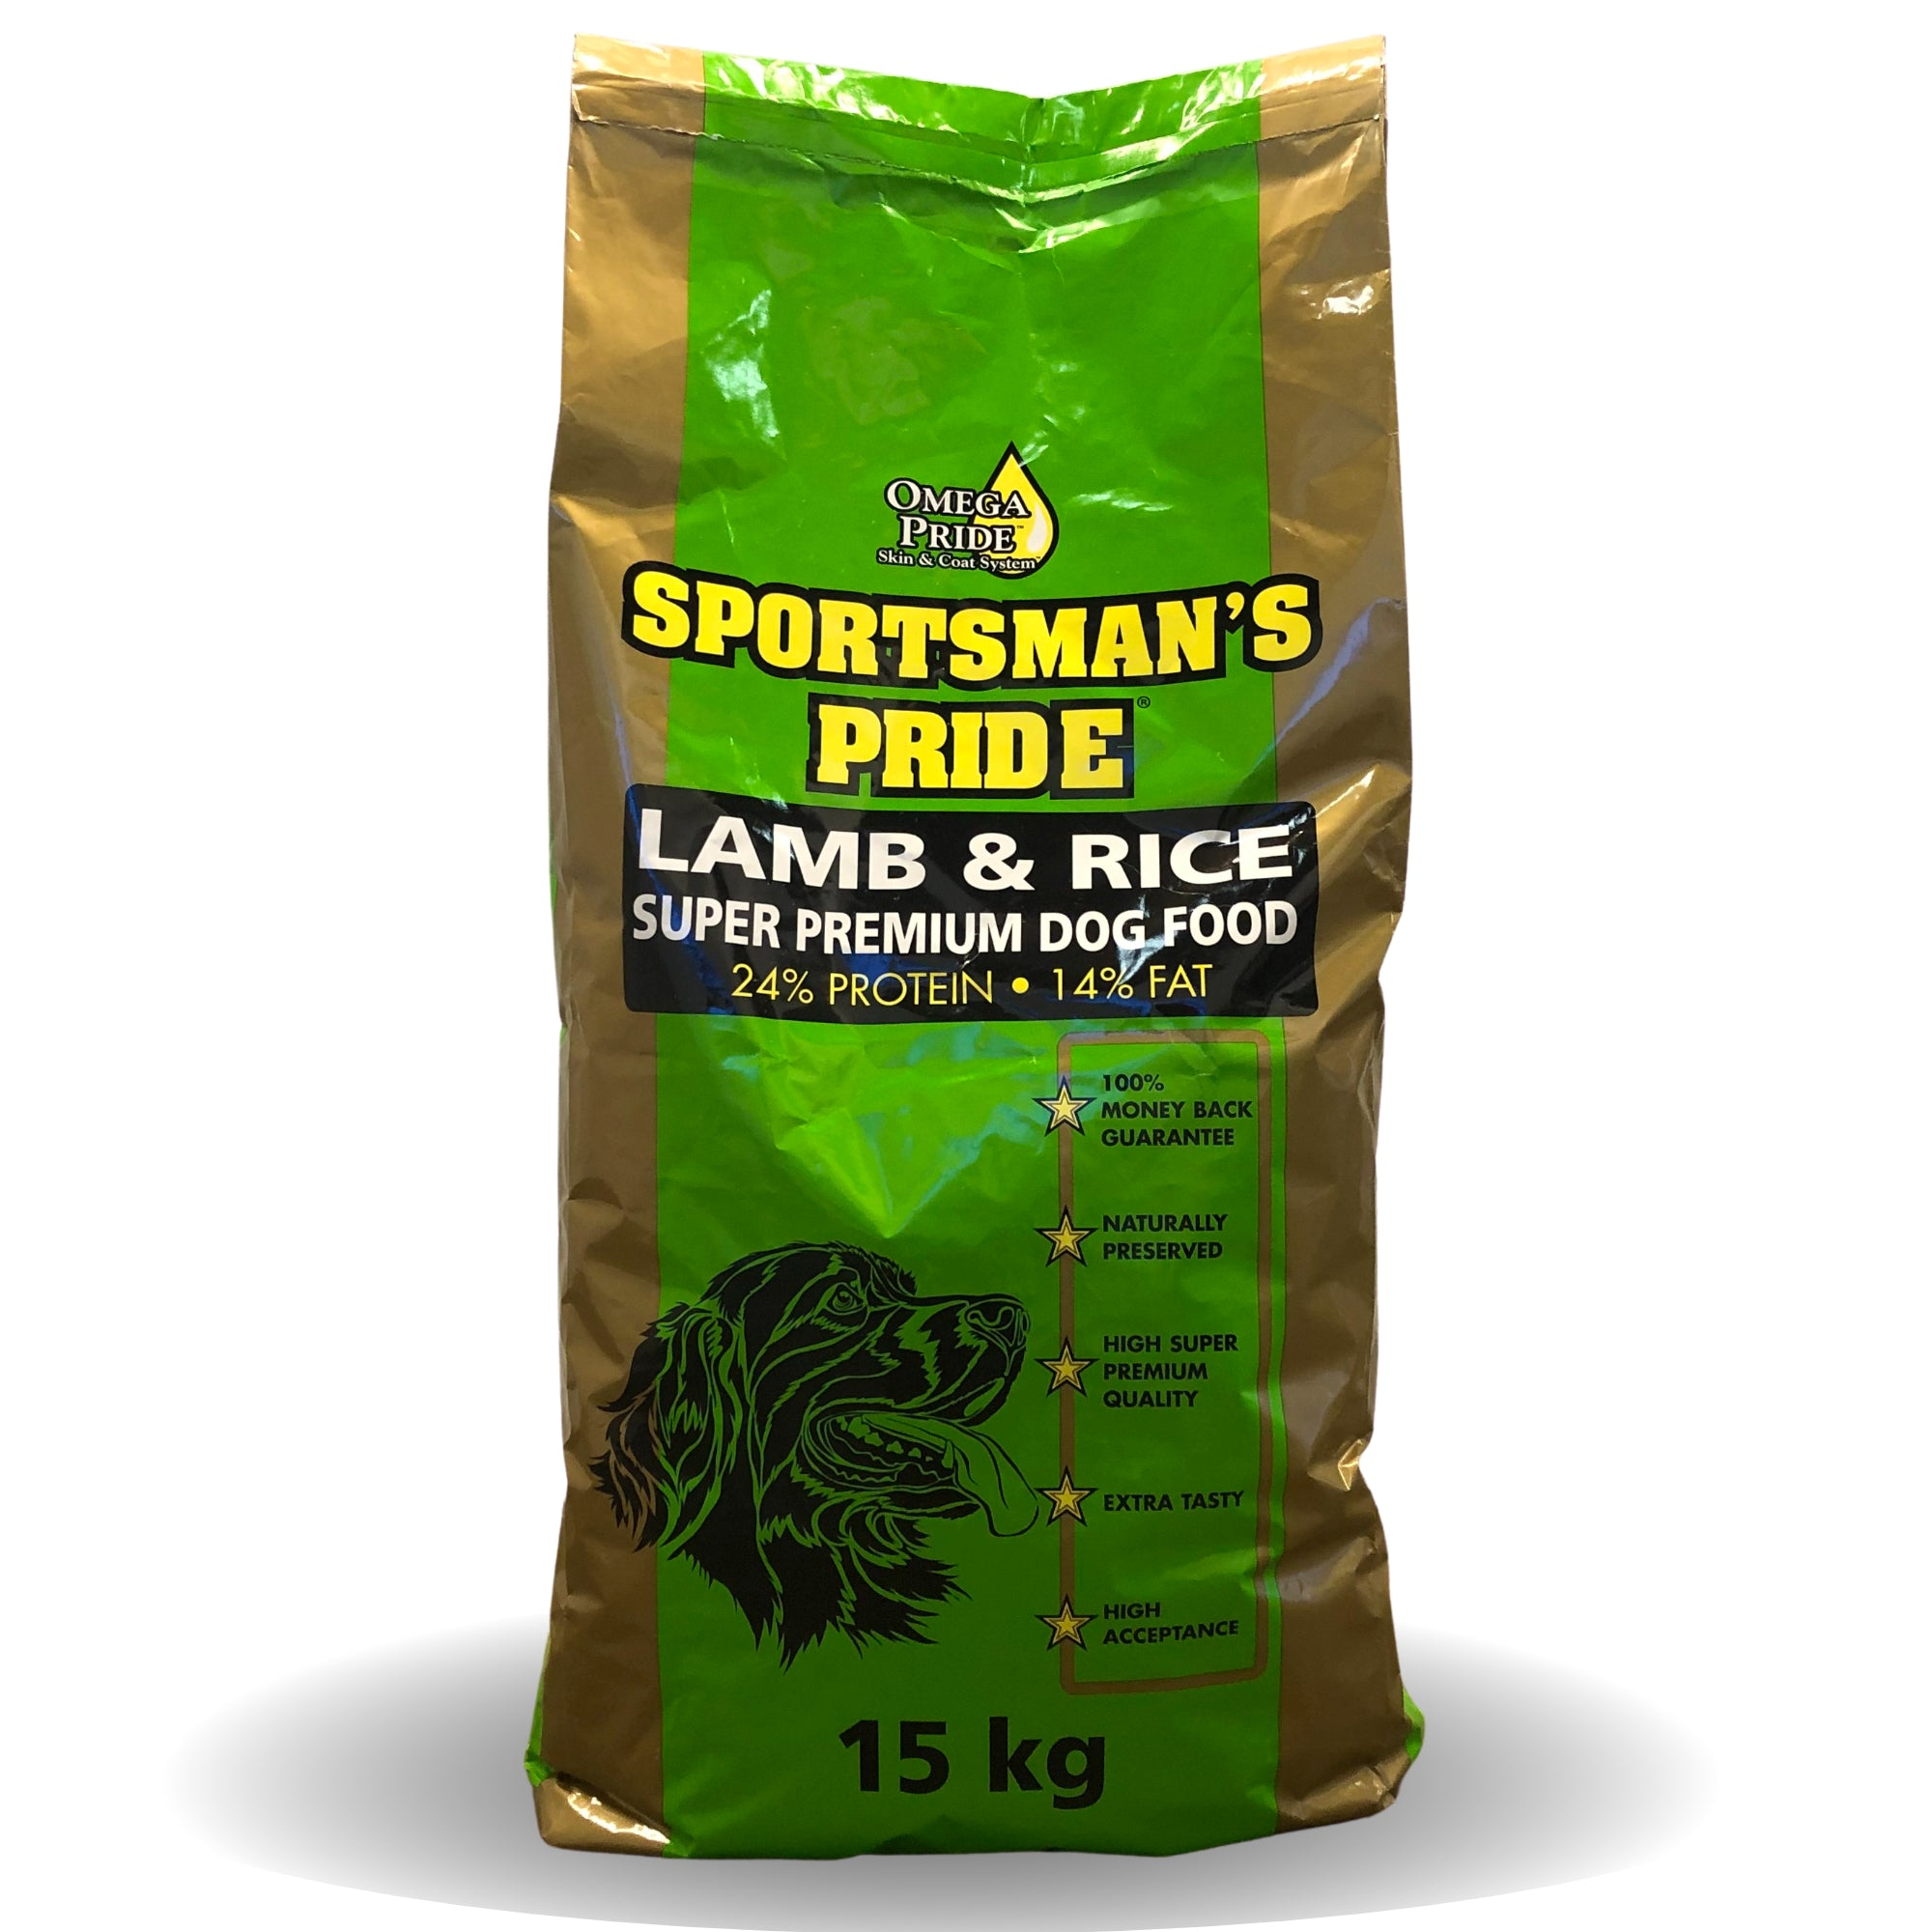 Sportsman's Pride Lamb & Rice 24/14 15 kg.